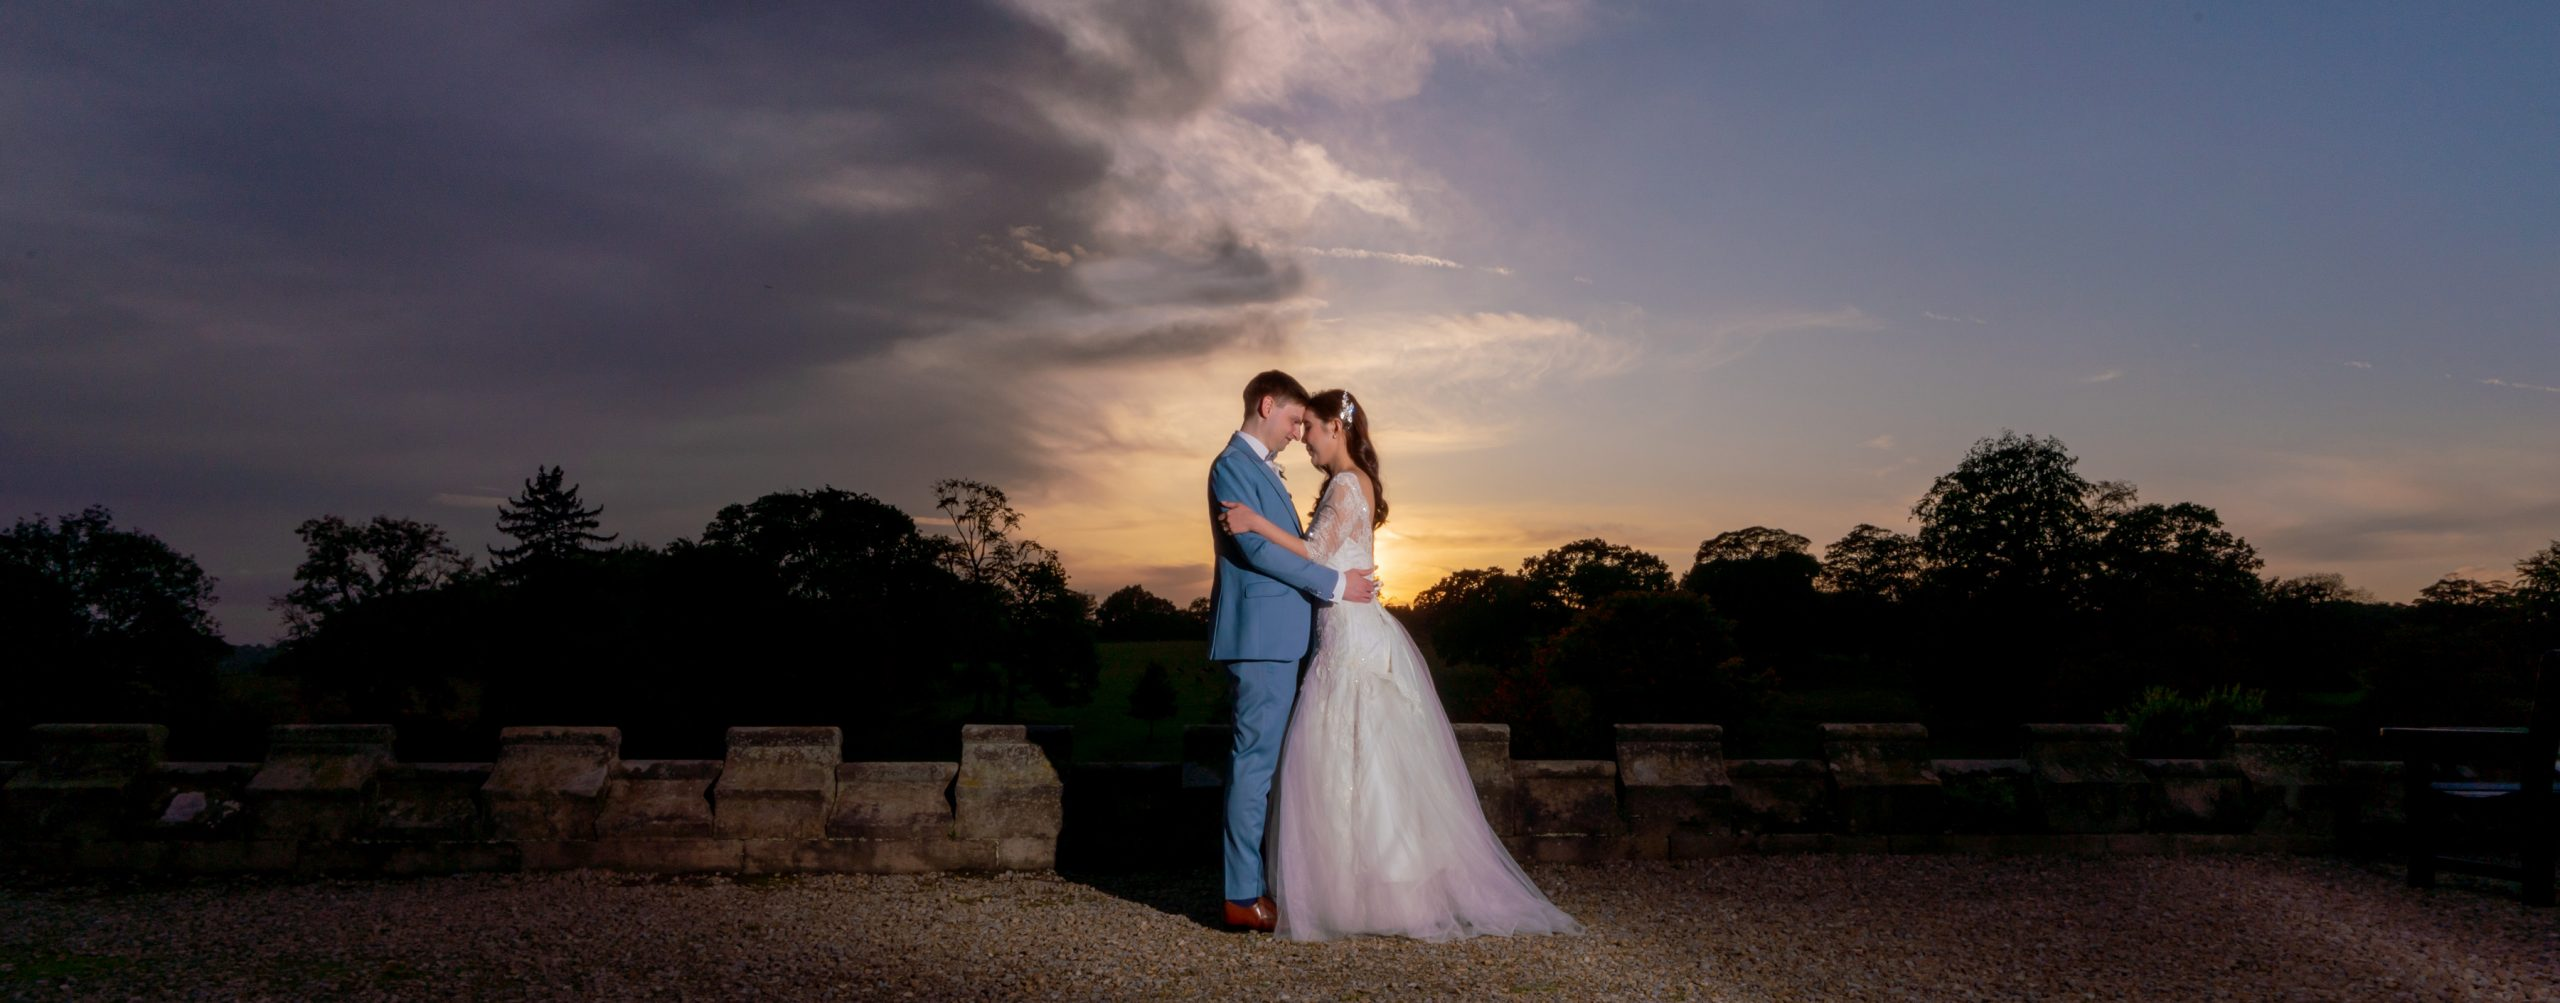 Ripley Castle Wedding Photography 3